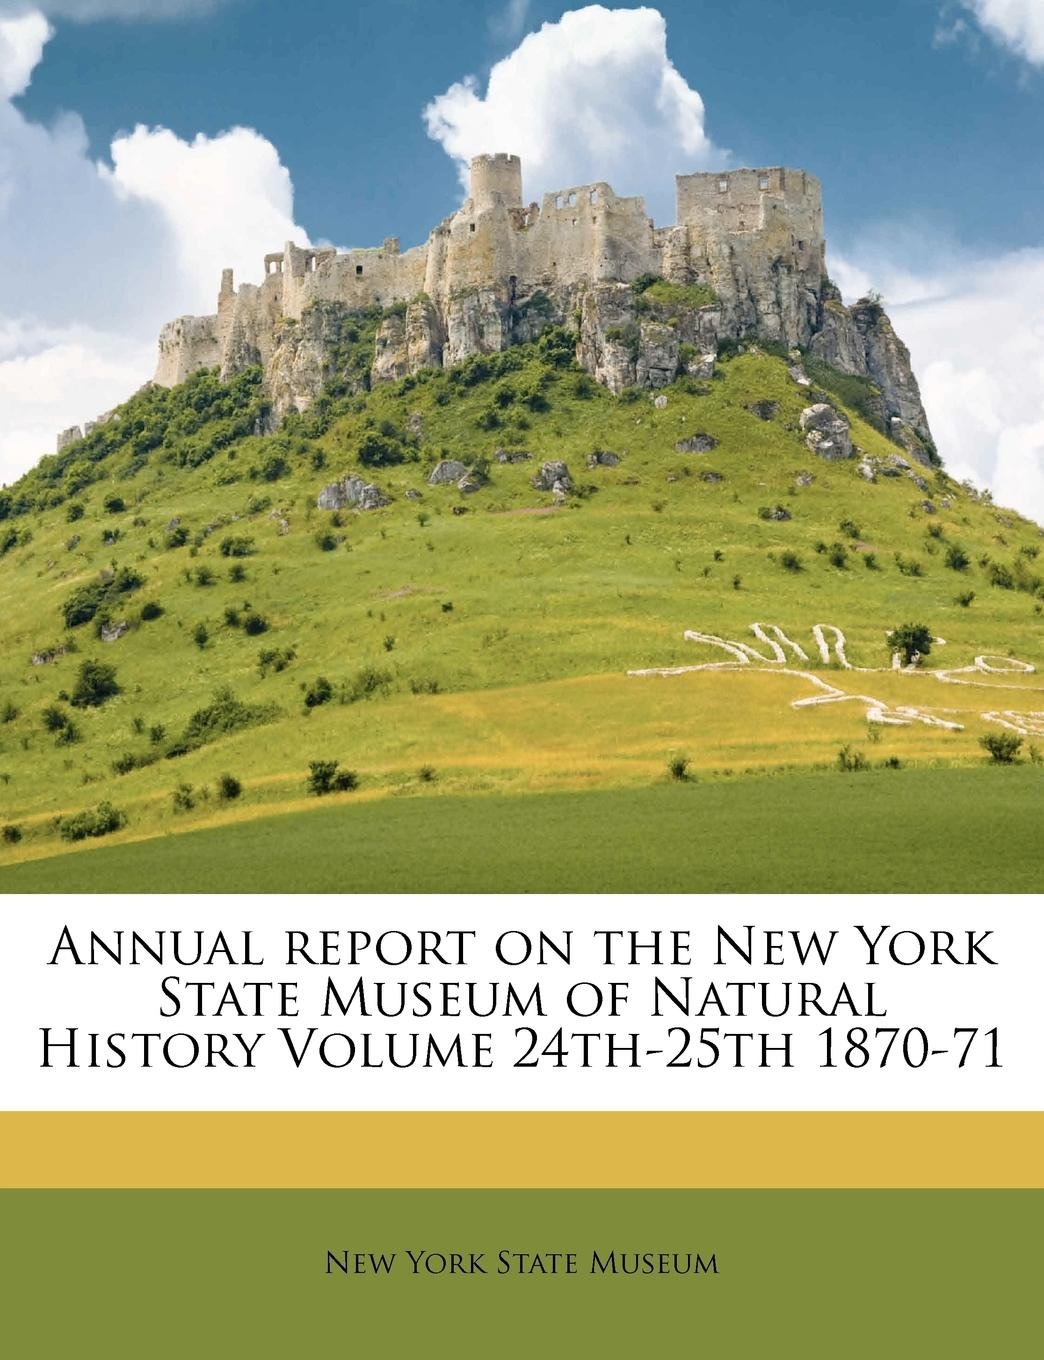 Download Annual report on the New York State Museum of Natural History Volume 24th-25th 1870-71 pdf